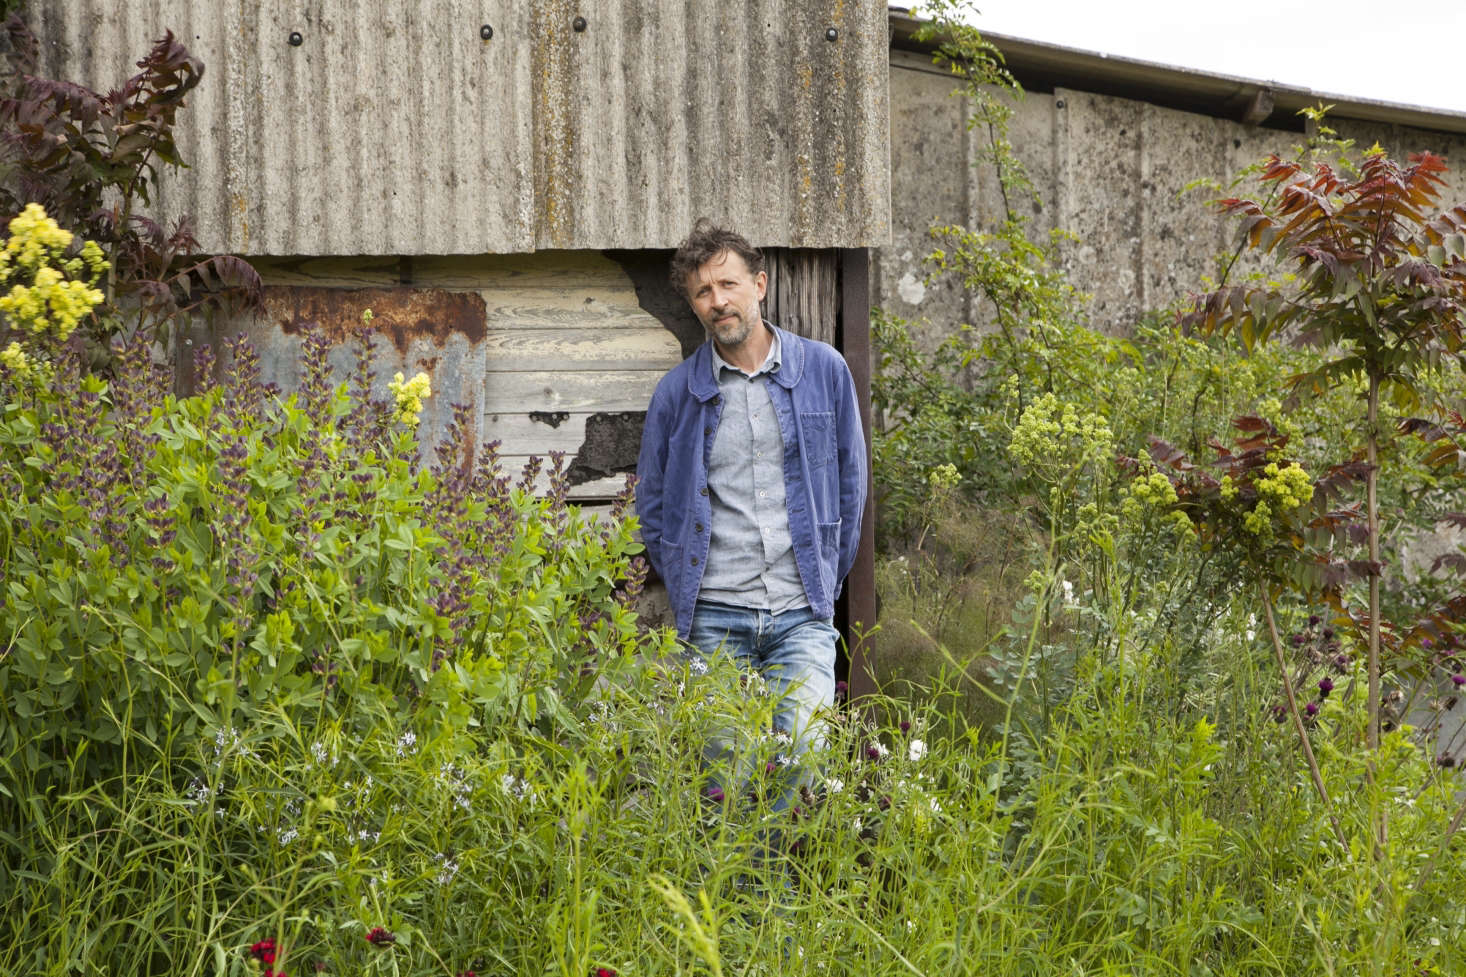 Natural Selection: A Year in the Garden by Dan Pearson - Gardenista